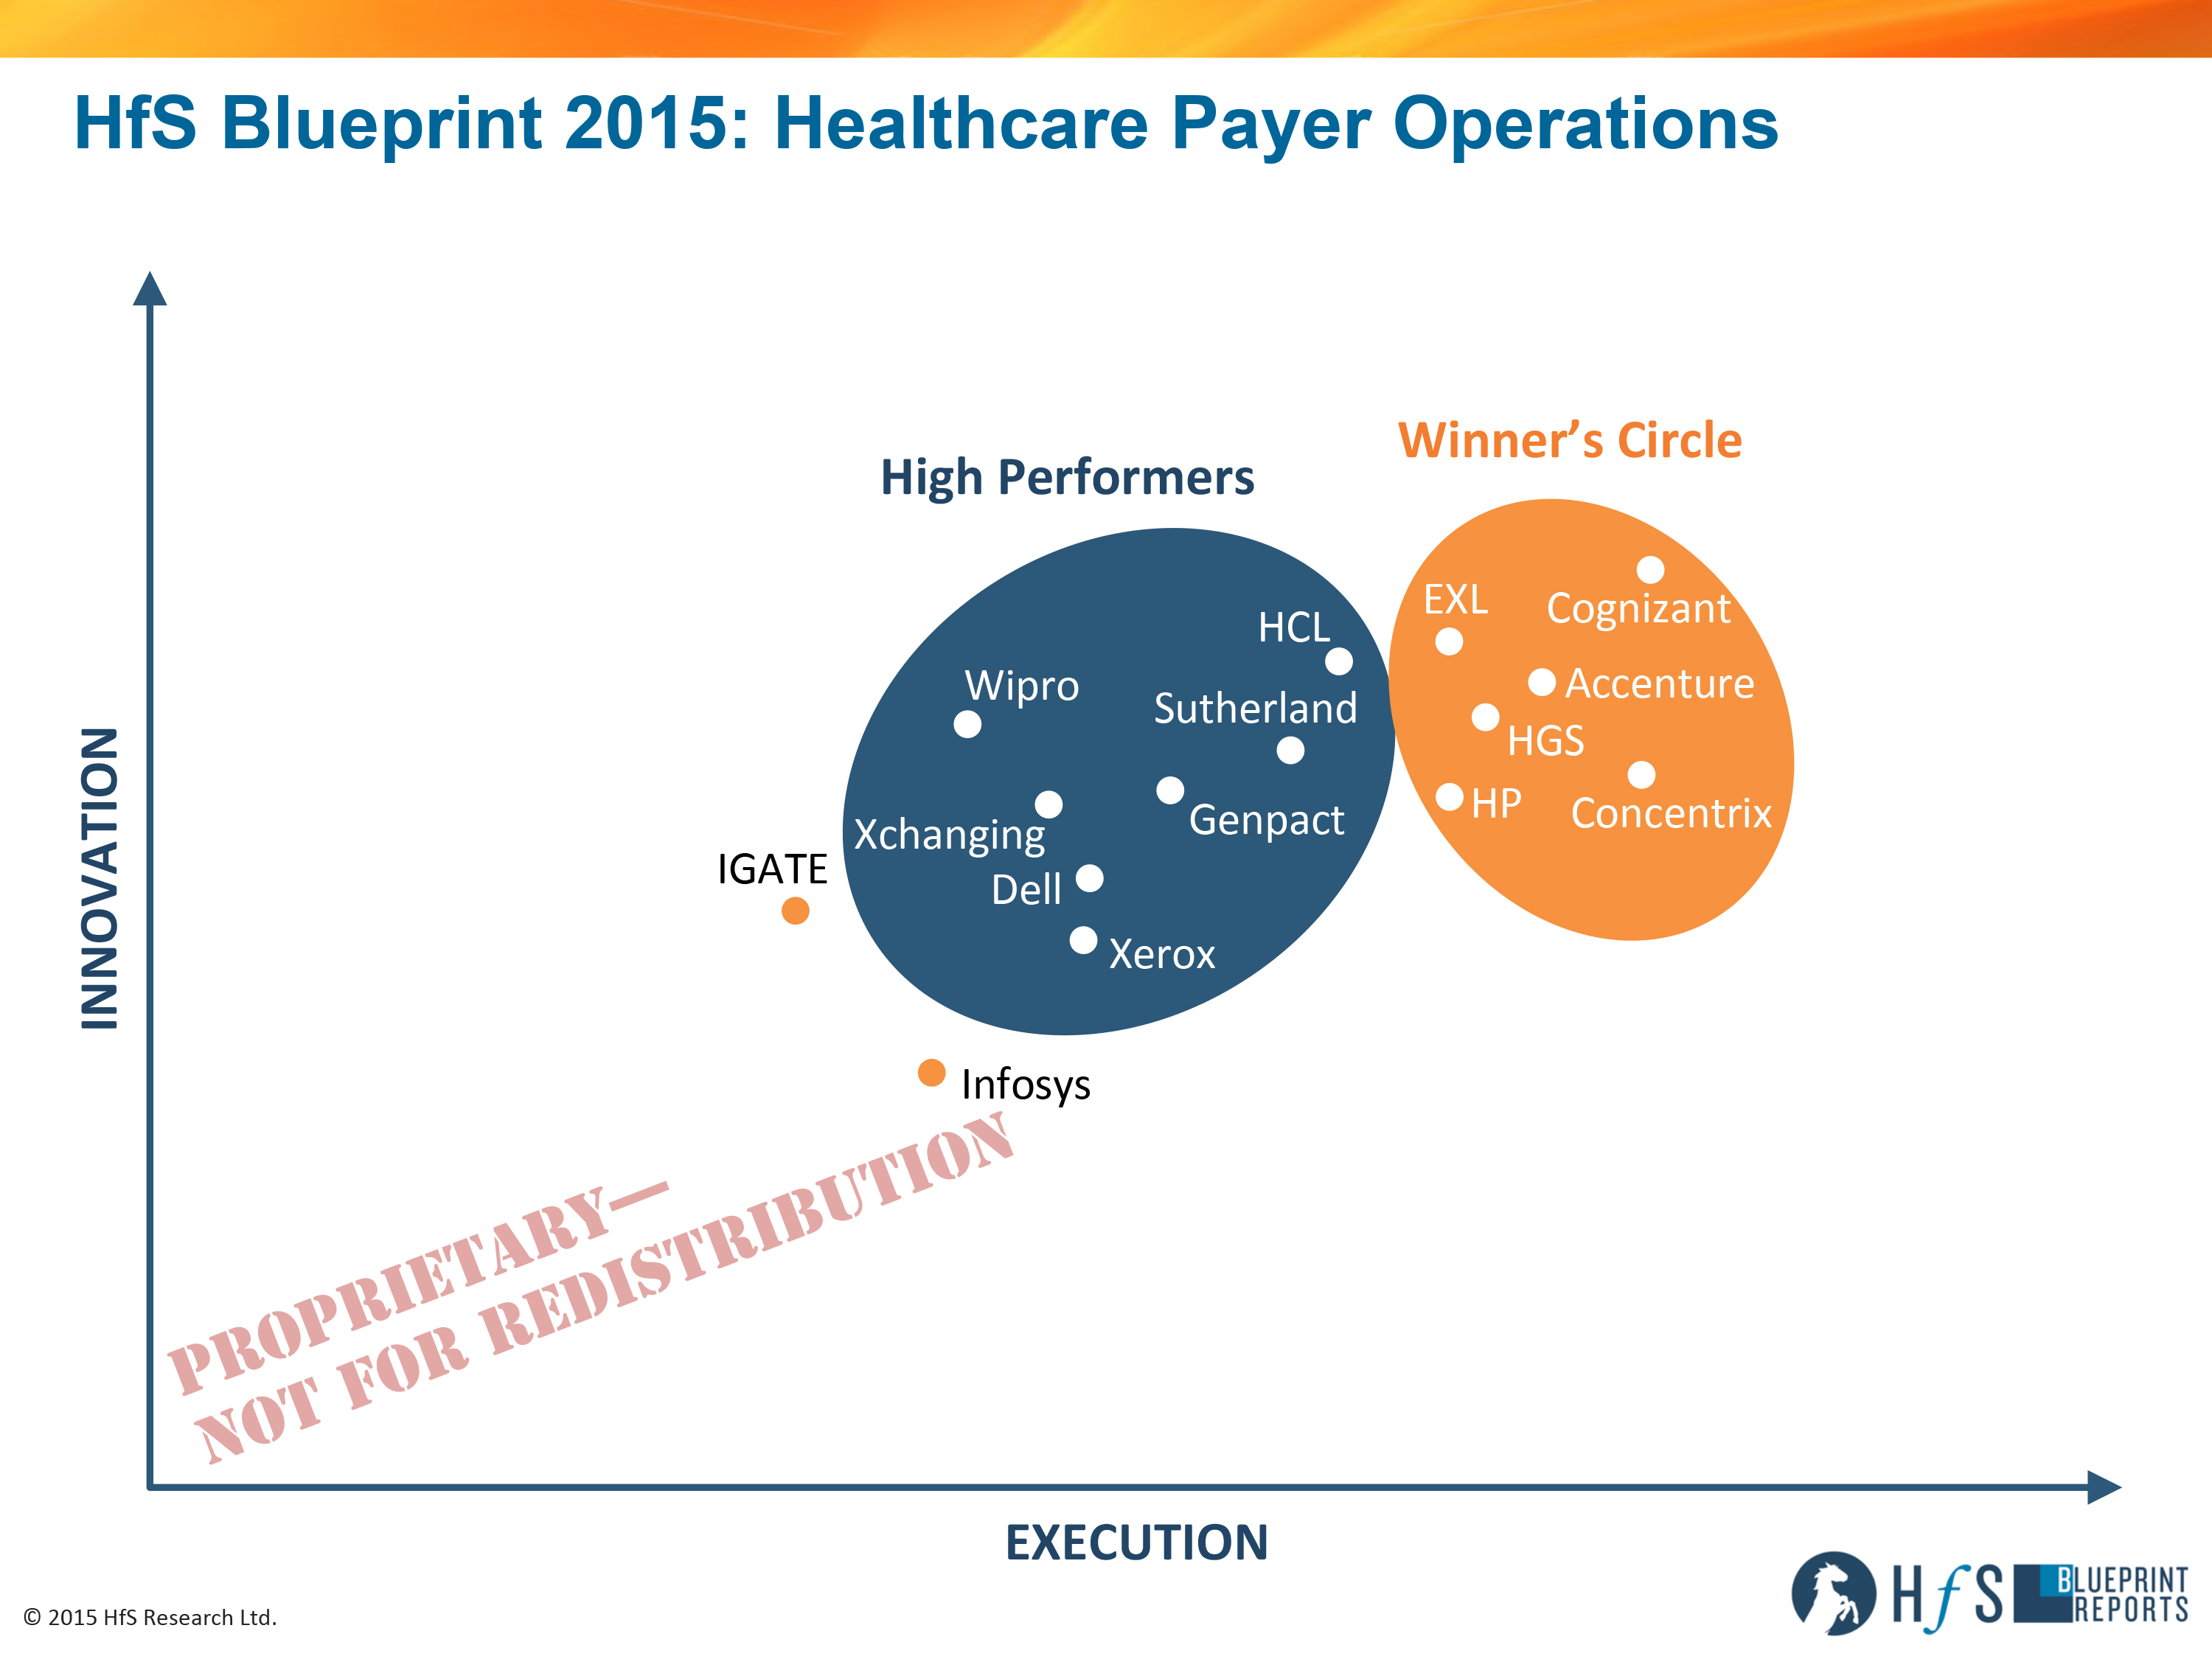 Cognizant accenture exl concentrix hgs and hp are the top rs1509hfs blueprint healthcare payer operations 2015 axis only malvernweather Image collections